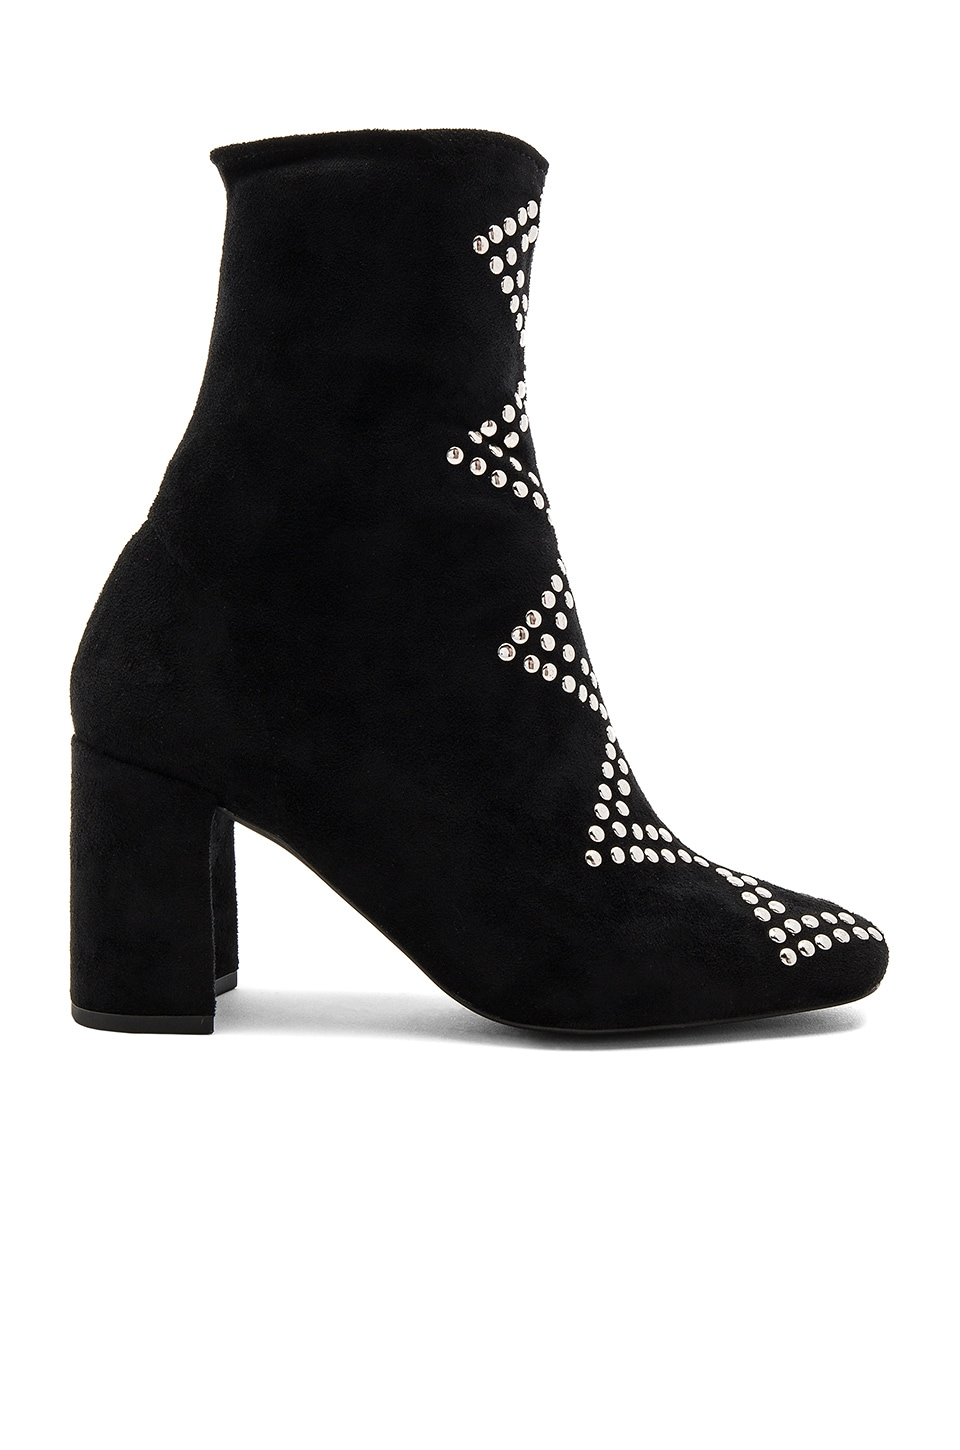 Jeffrey Campbell x REVOLVE Cienega Booties in Black Suede Silver